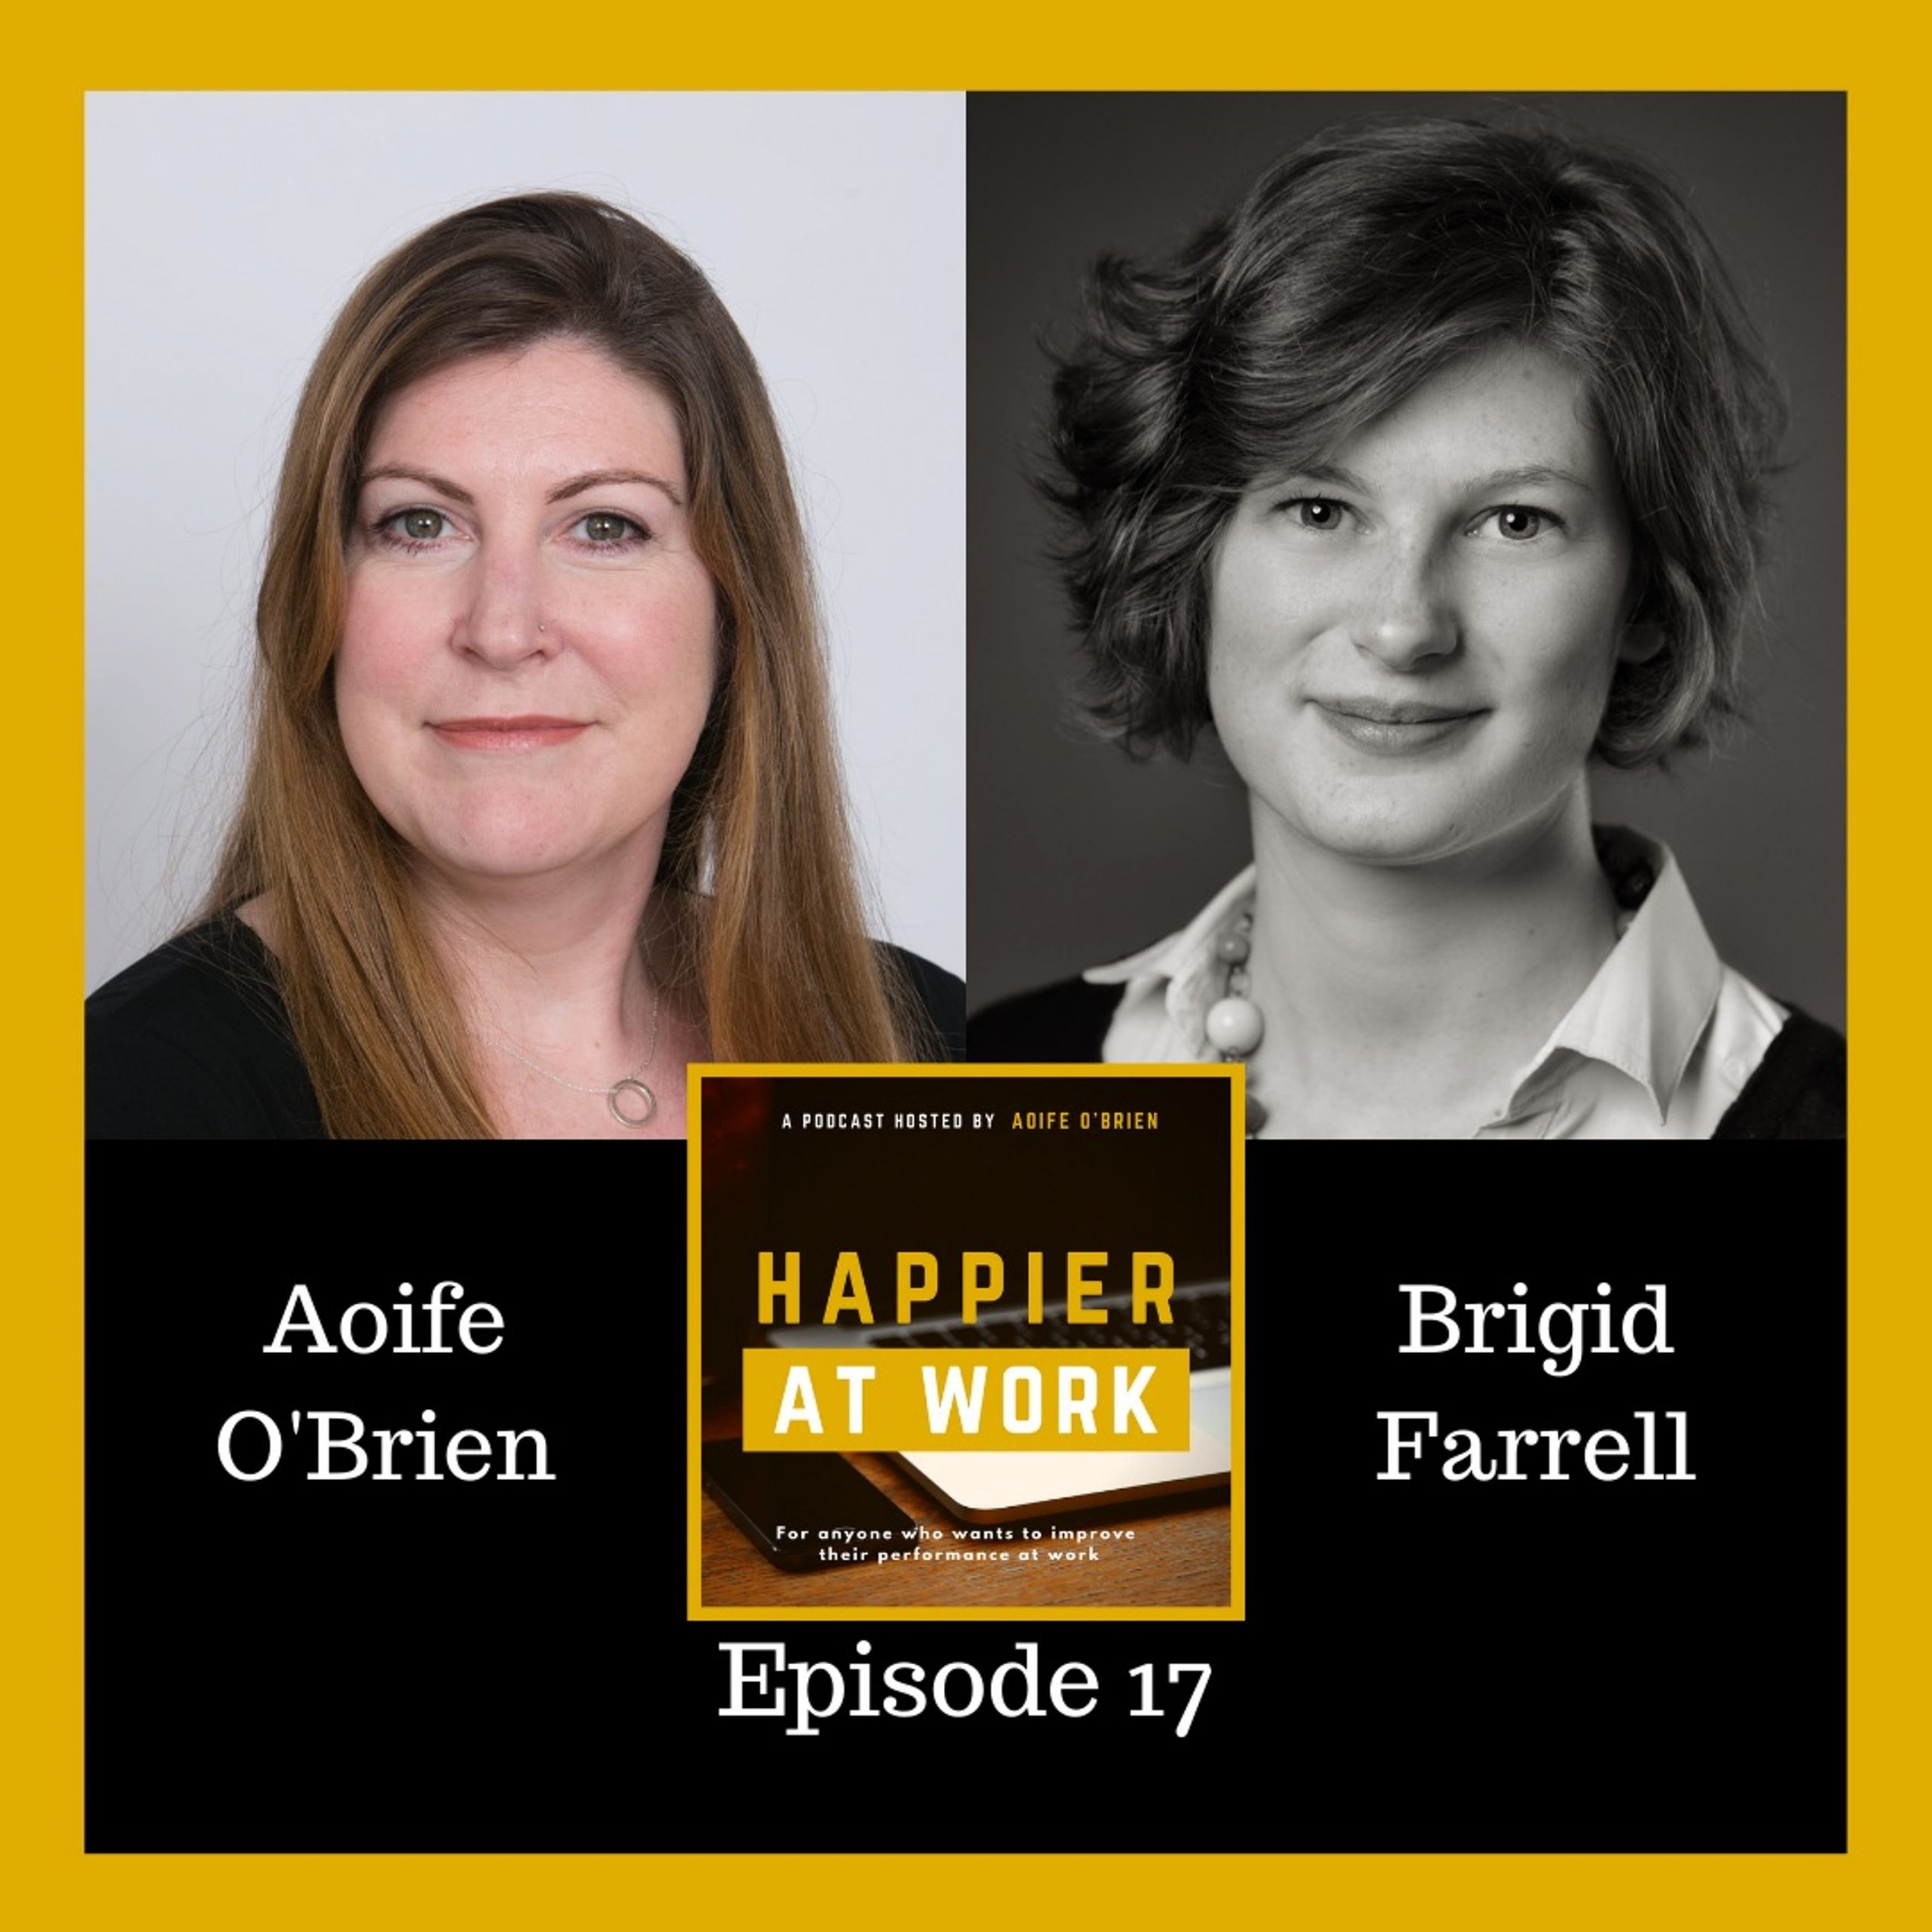 Happier at Work podcast Brigid Farrell